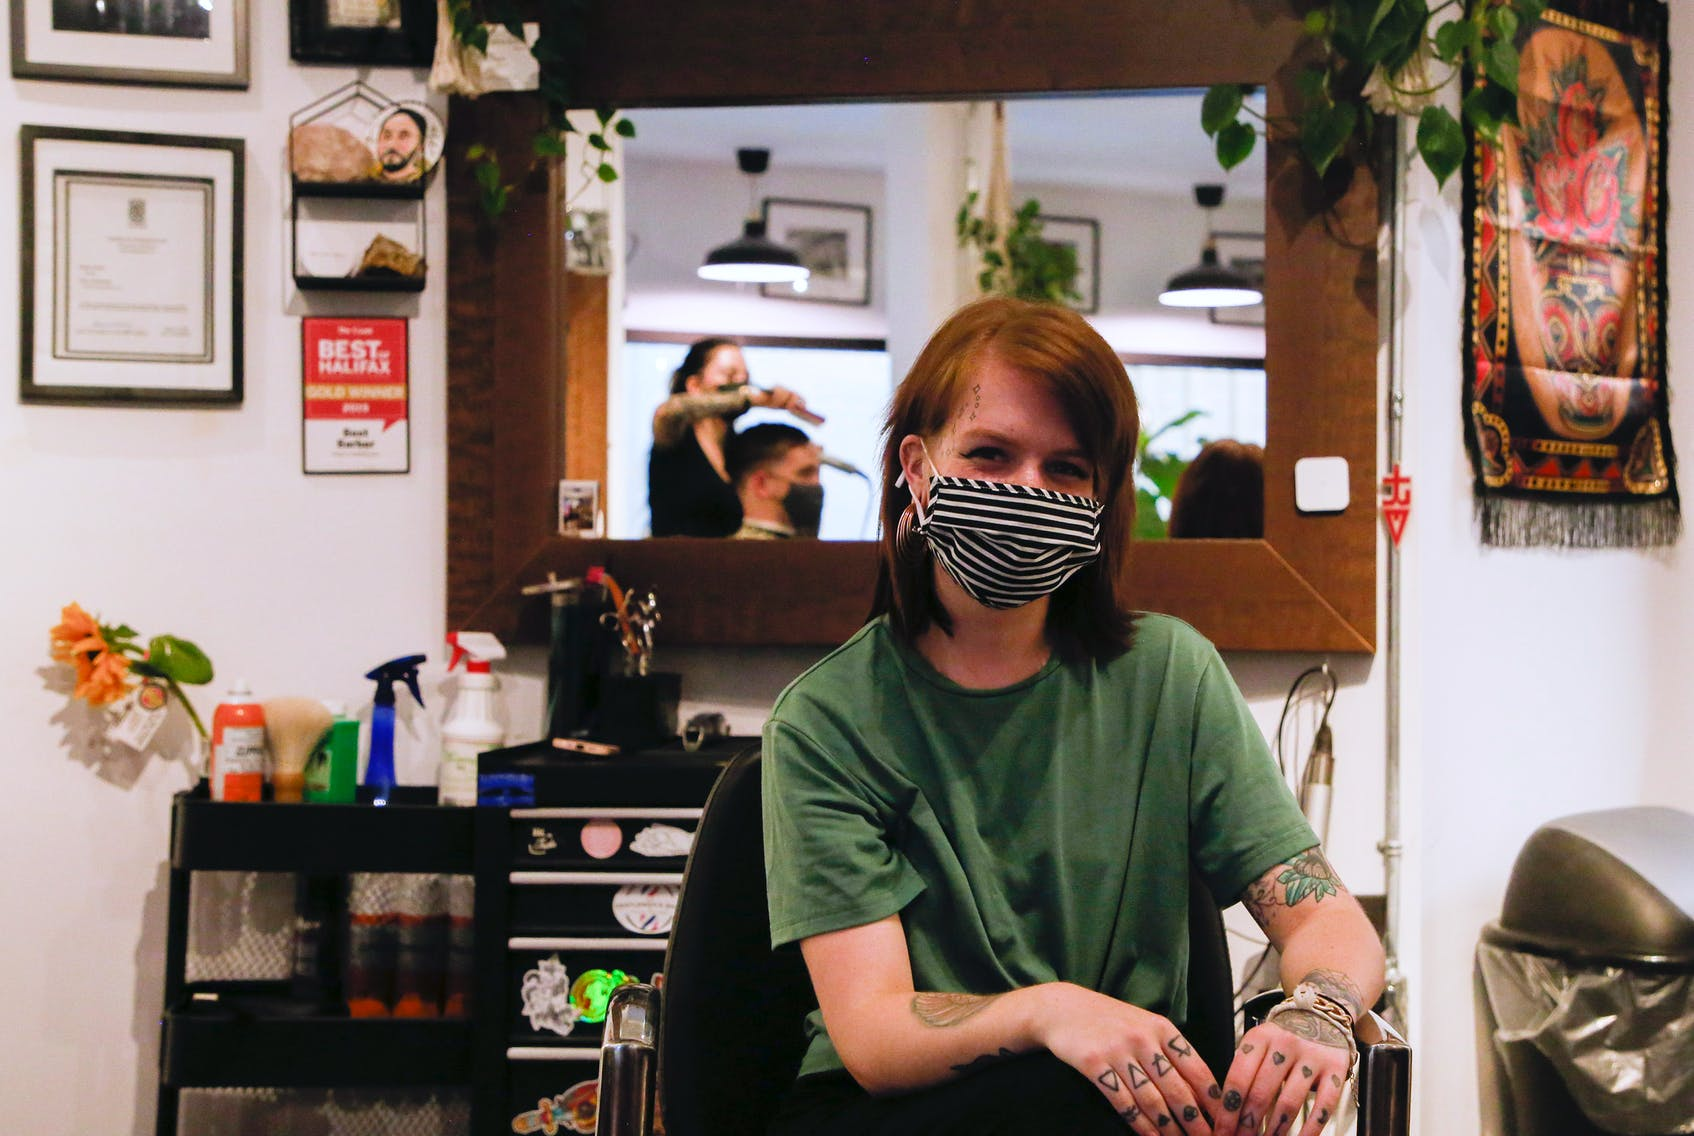 Robyn Ingraham, seen between customer appointments at The Devoted Barbers in Dartmouth on Thursday, says she was asked to drop out of the race for Dartmouth South by the Liberal party. -- TIM KROCHAK PHOTO